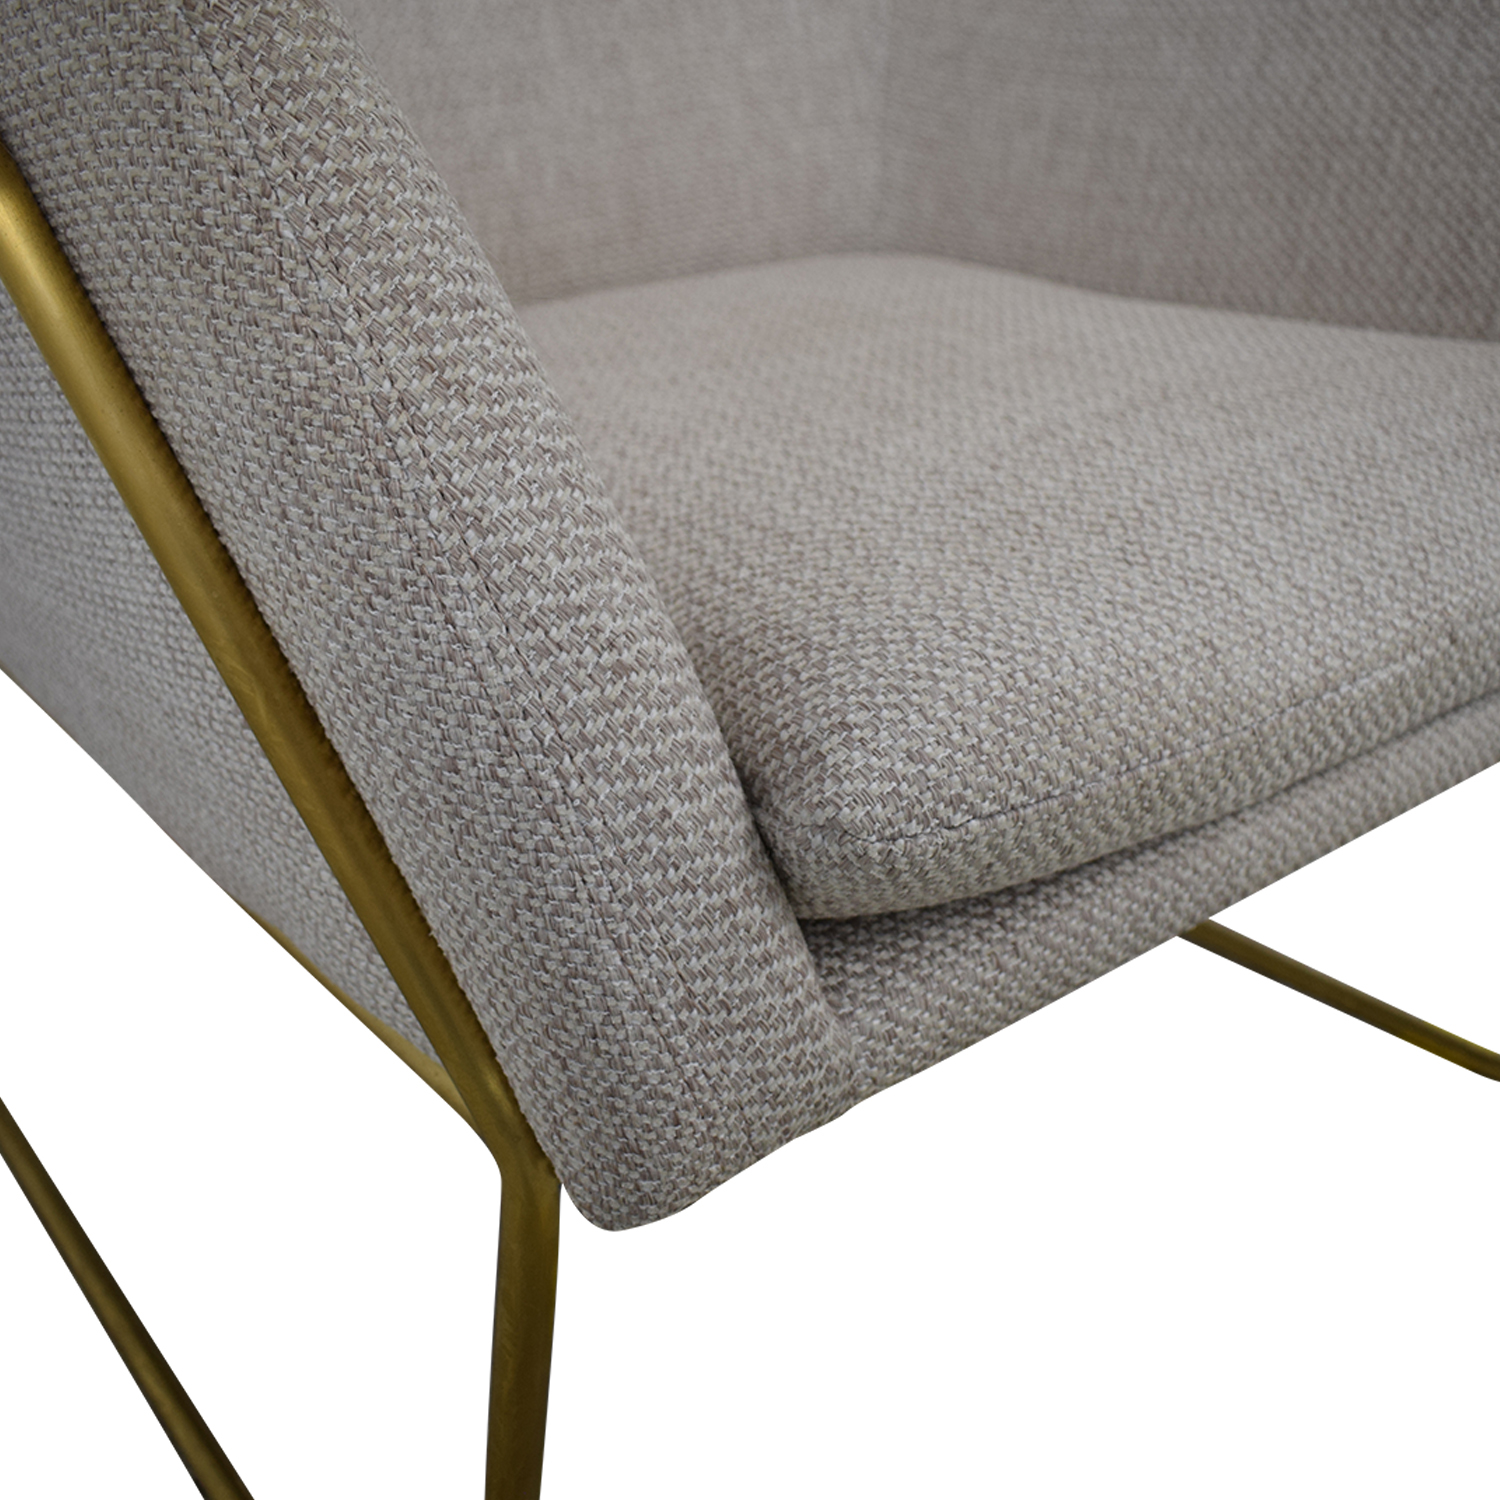 Article Forma Chair / Chairs